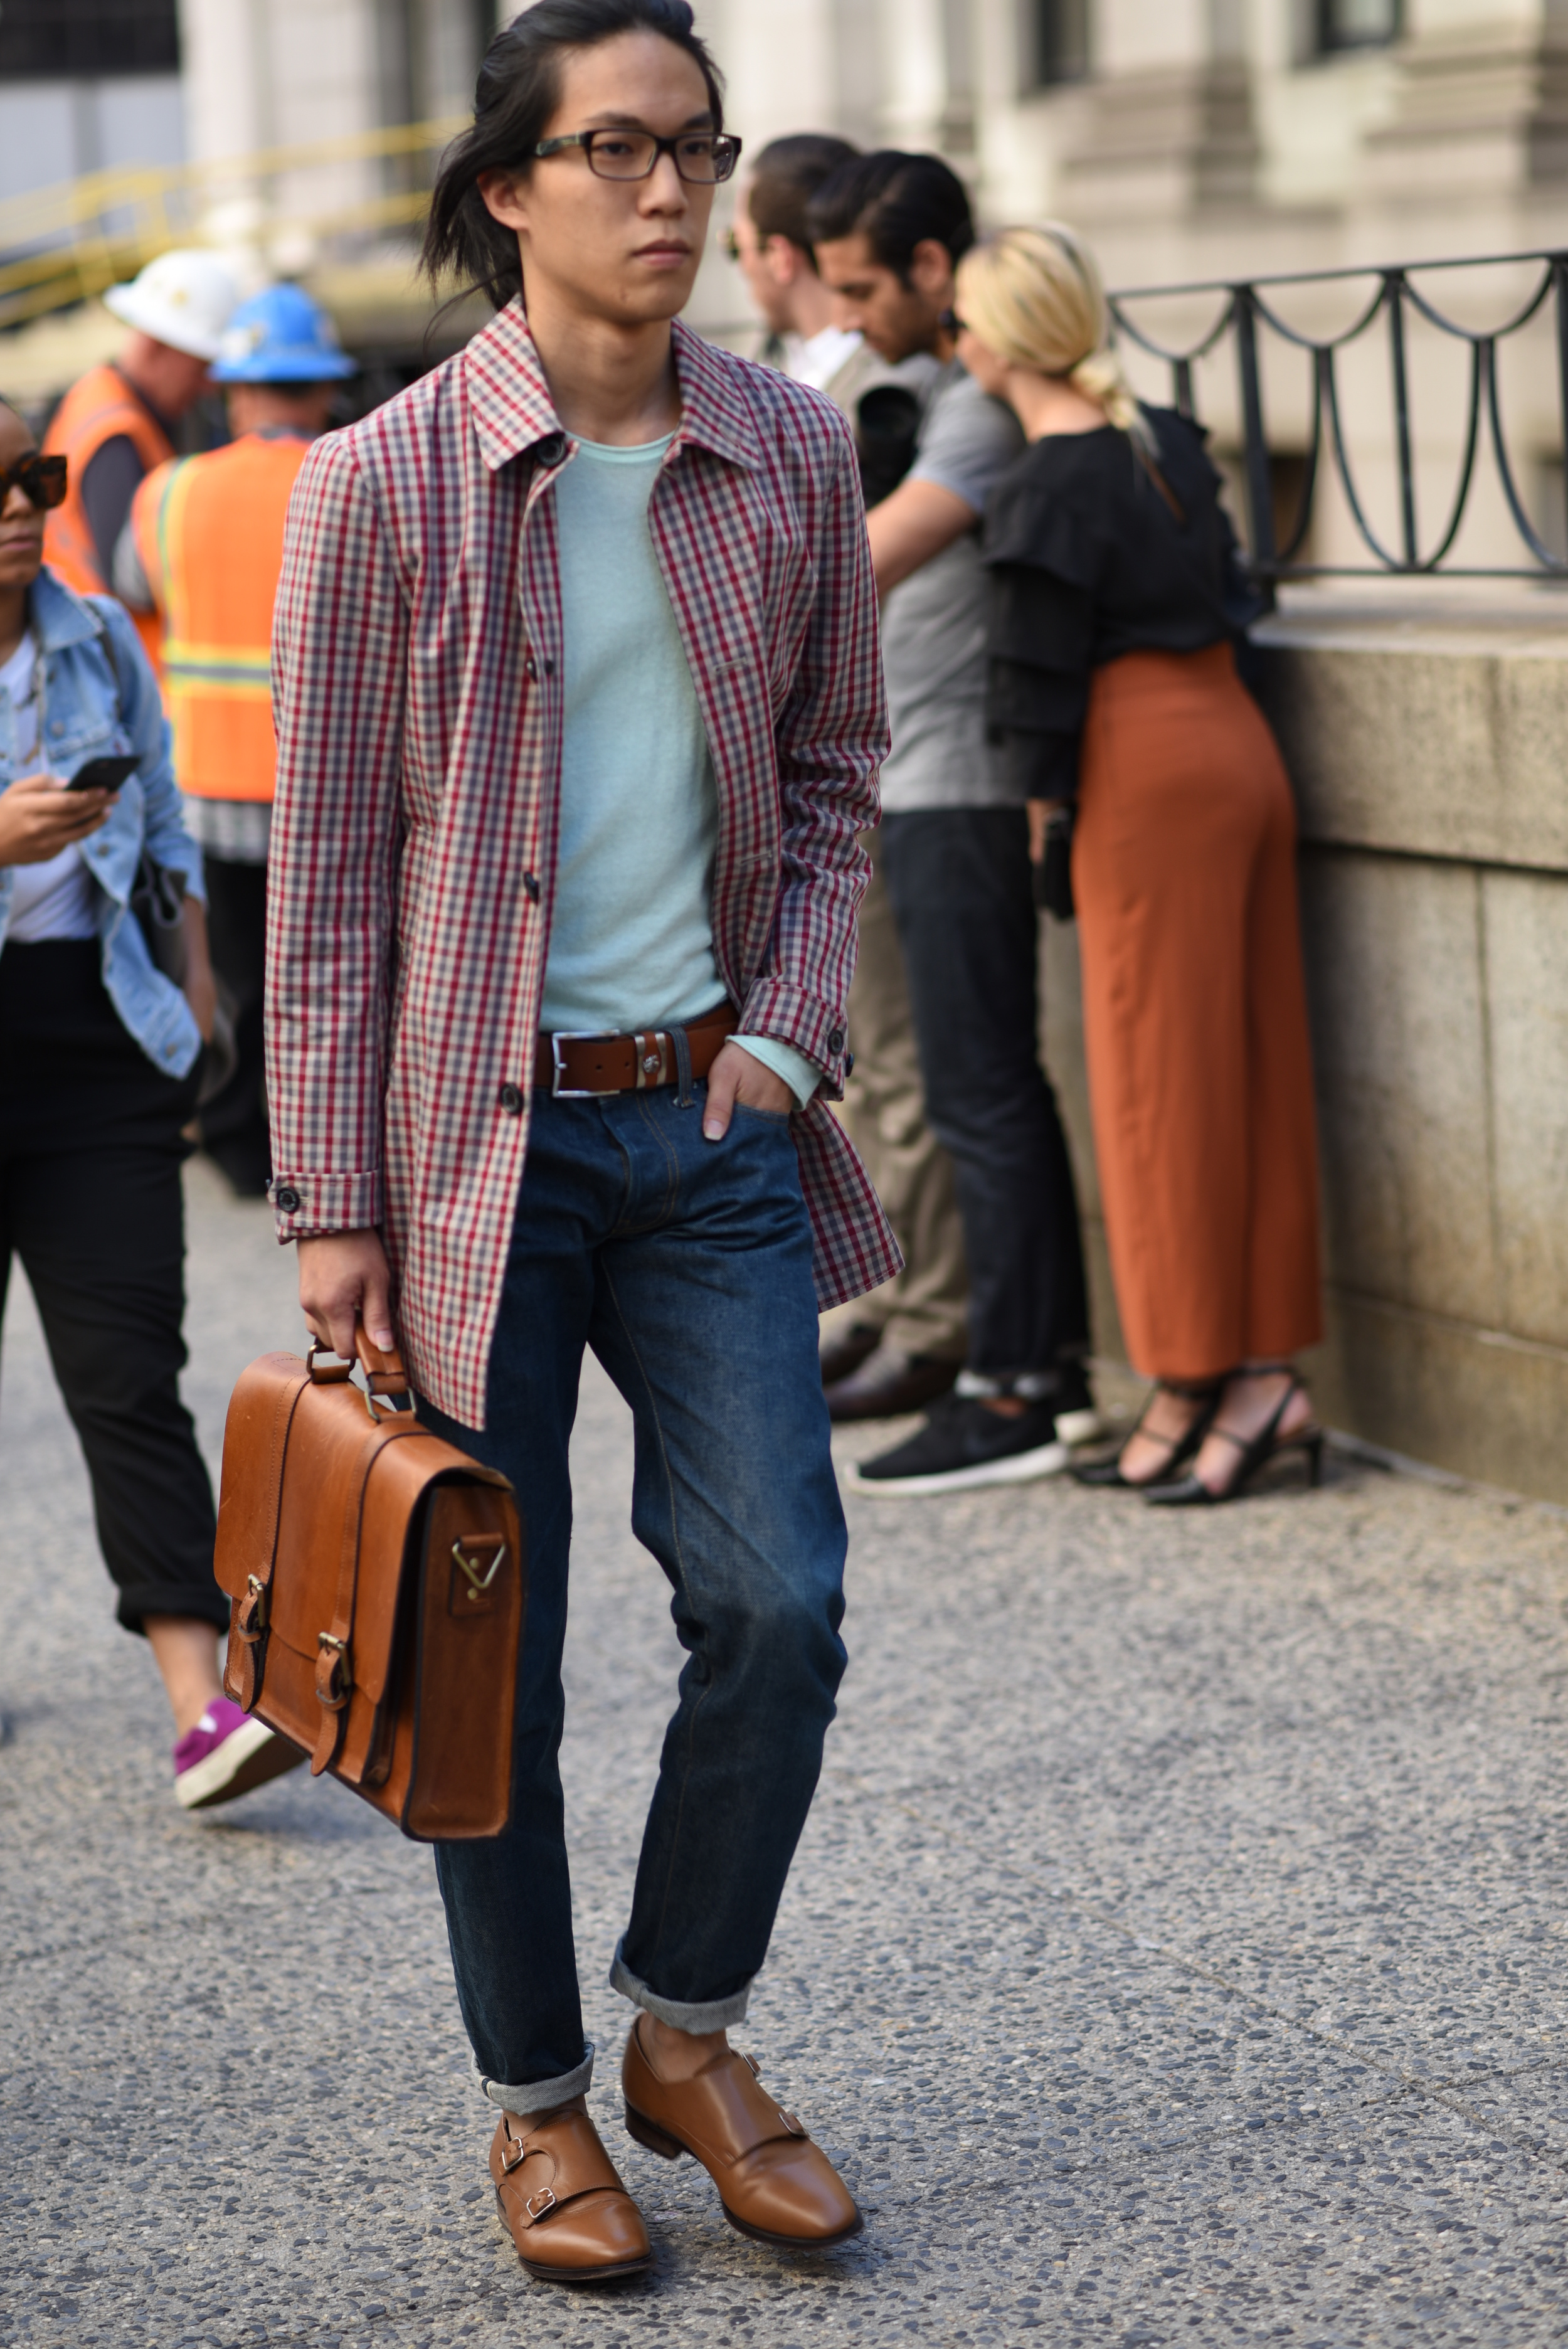 Preppy chic. The leather in this outfit is so rich.